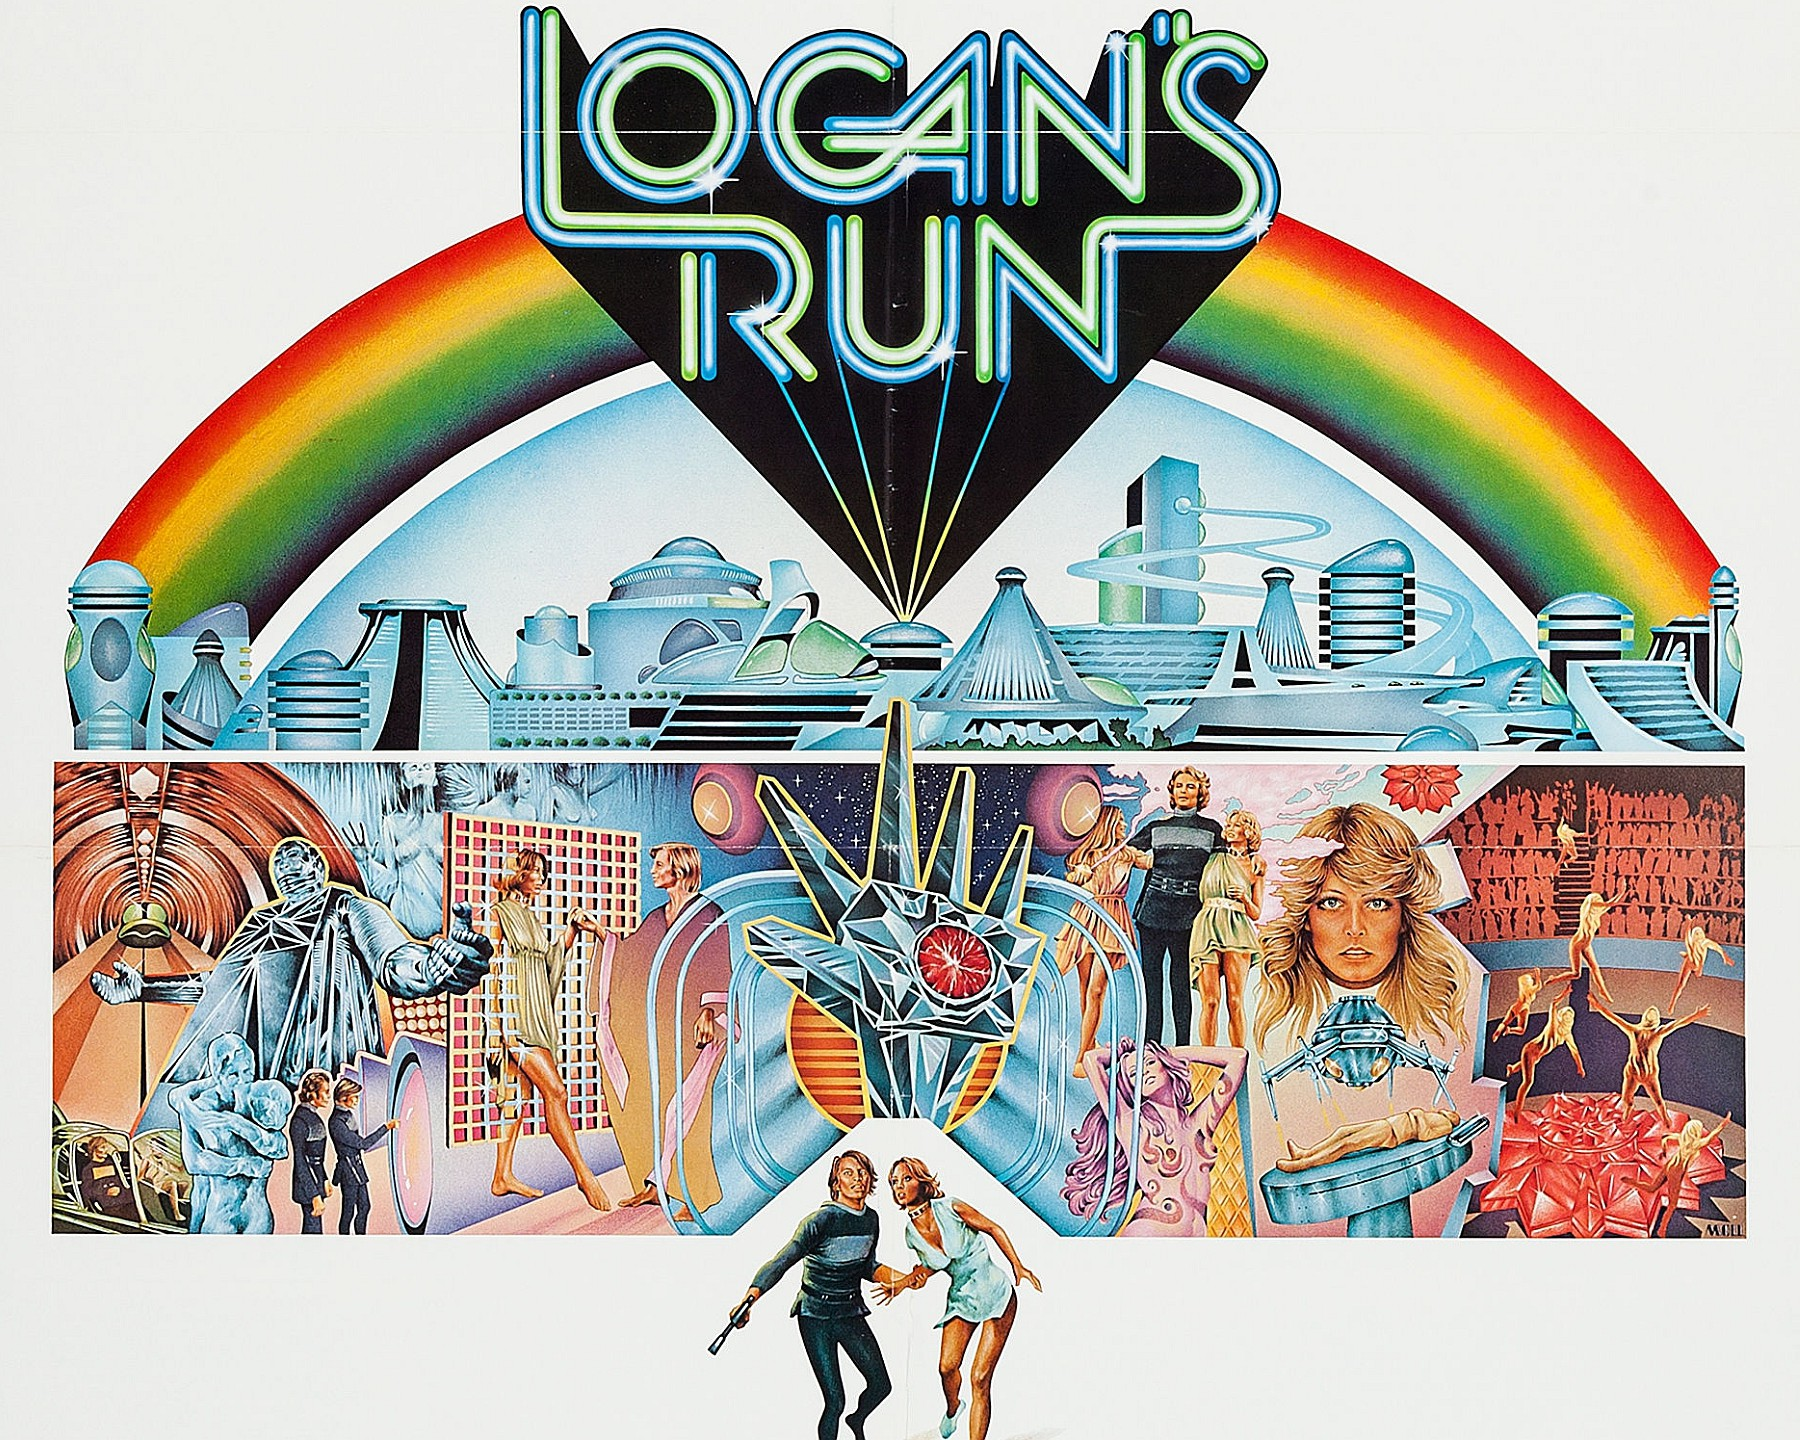 logans run e1449869330282 How Star Wars Almost Didnt Happen